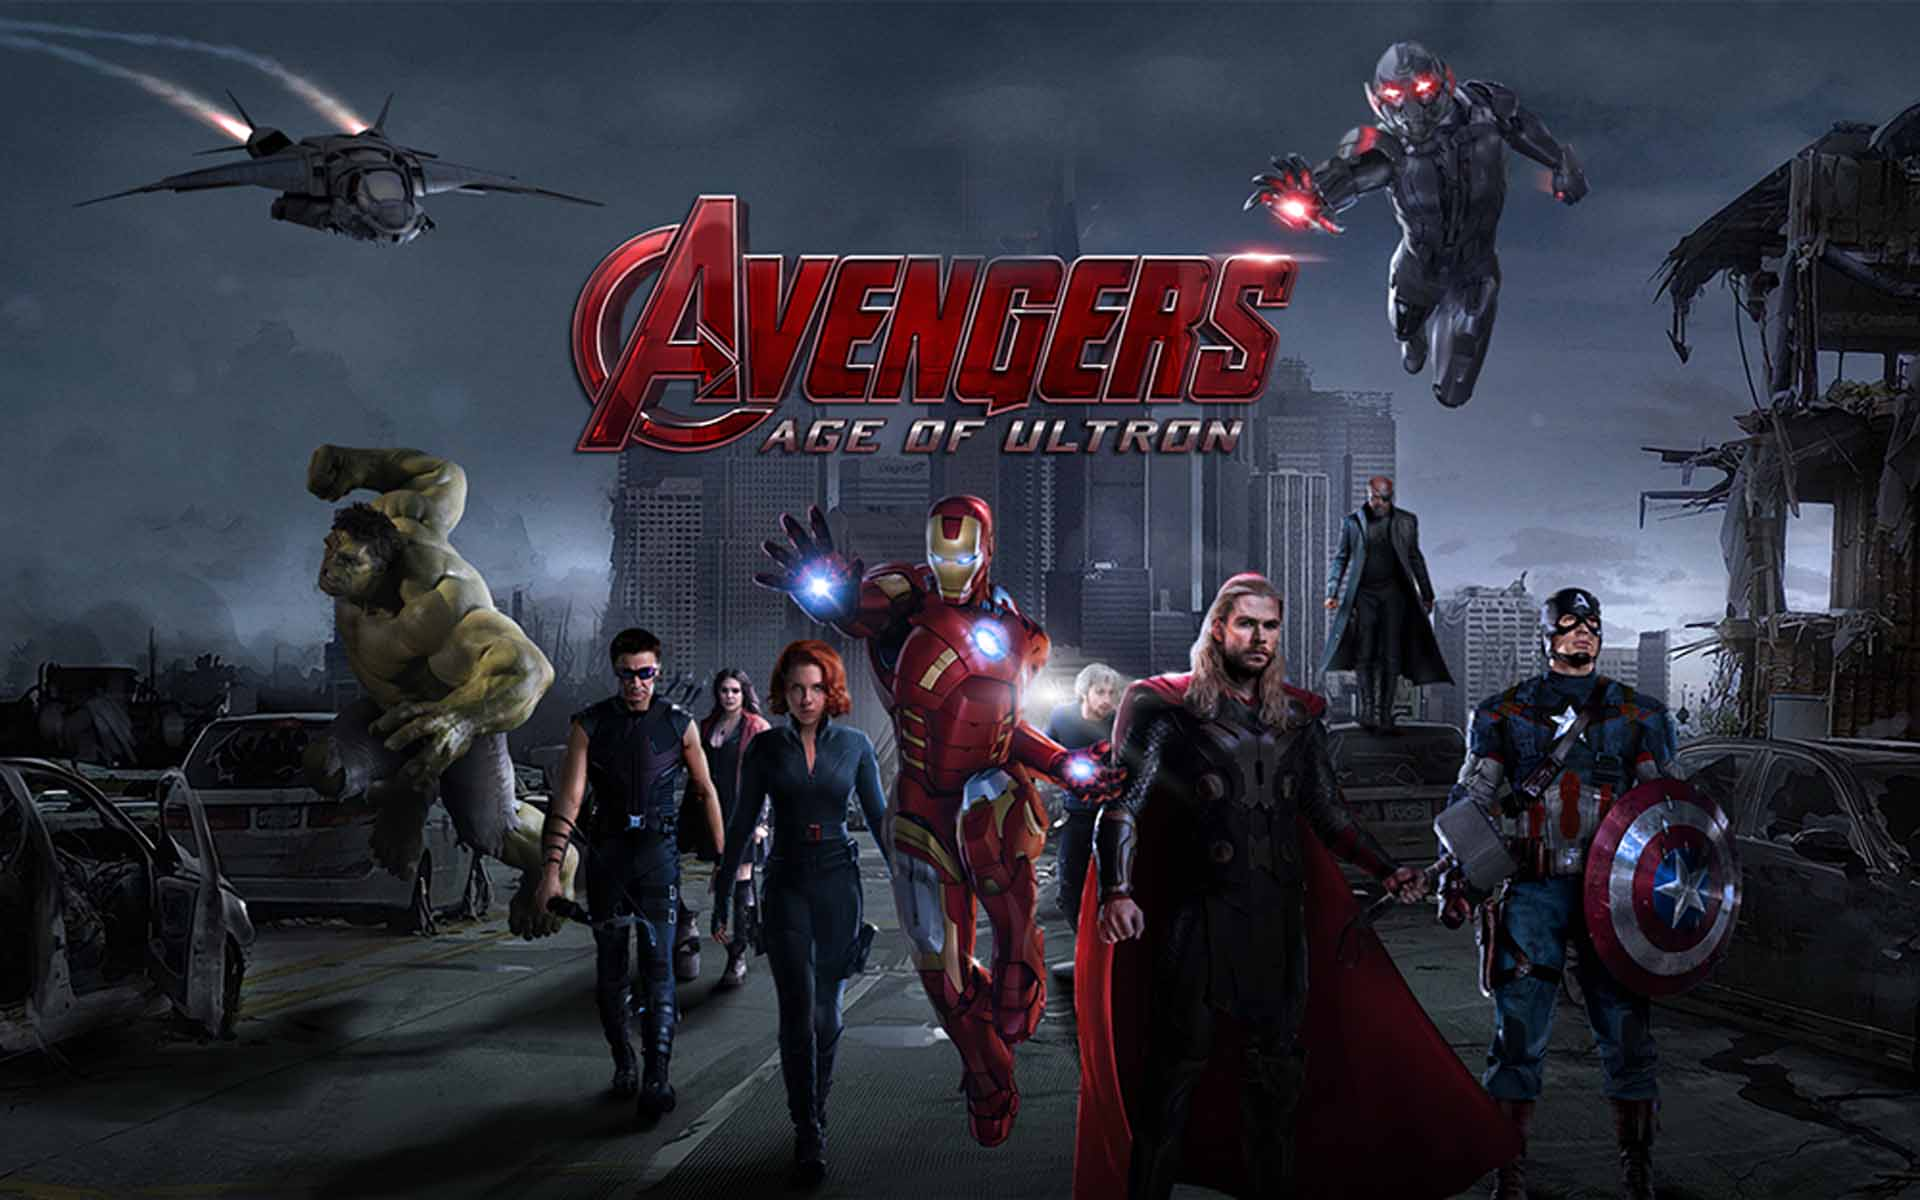 age of ultron 2015 hd wallpapers 7 avengers age of ultron 2015 hd 1920x1200